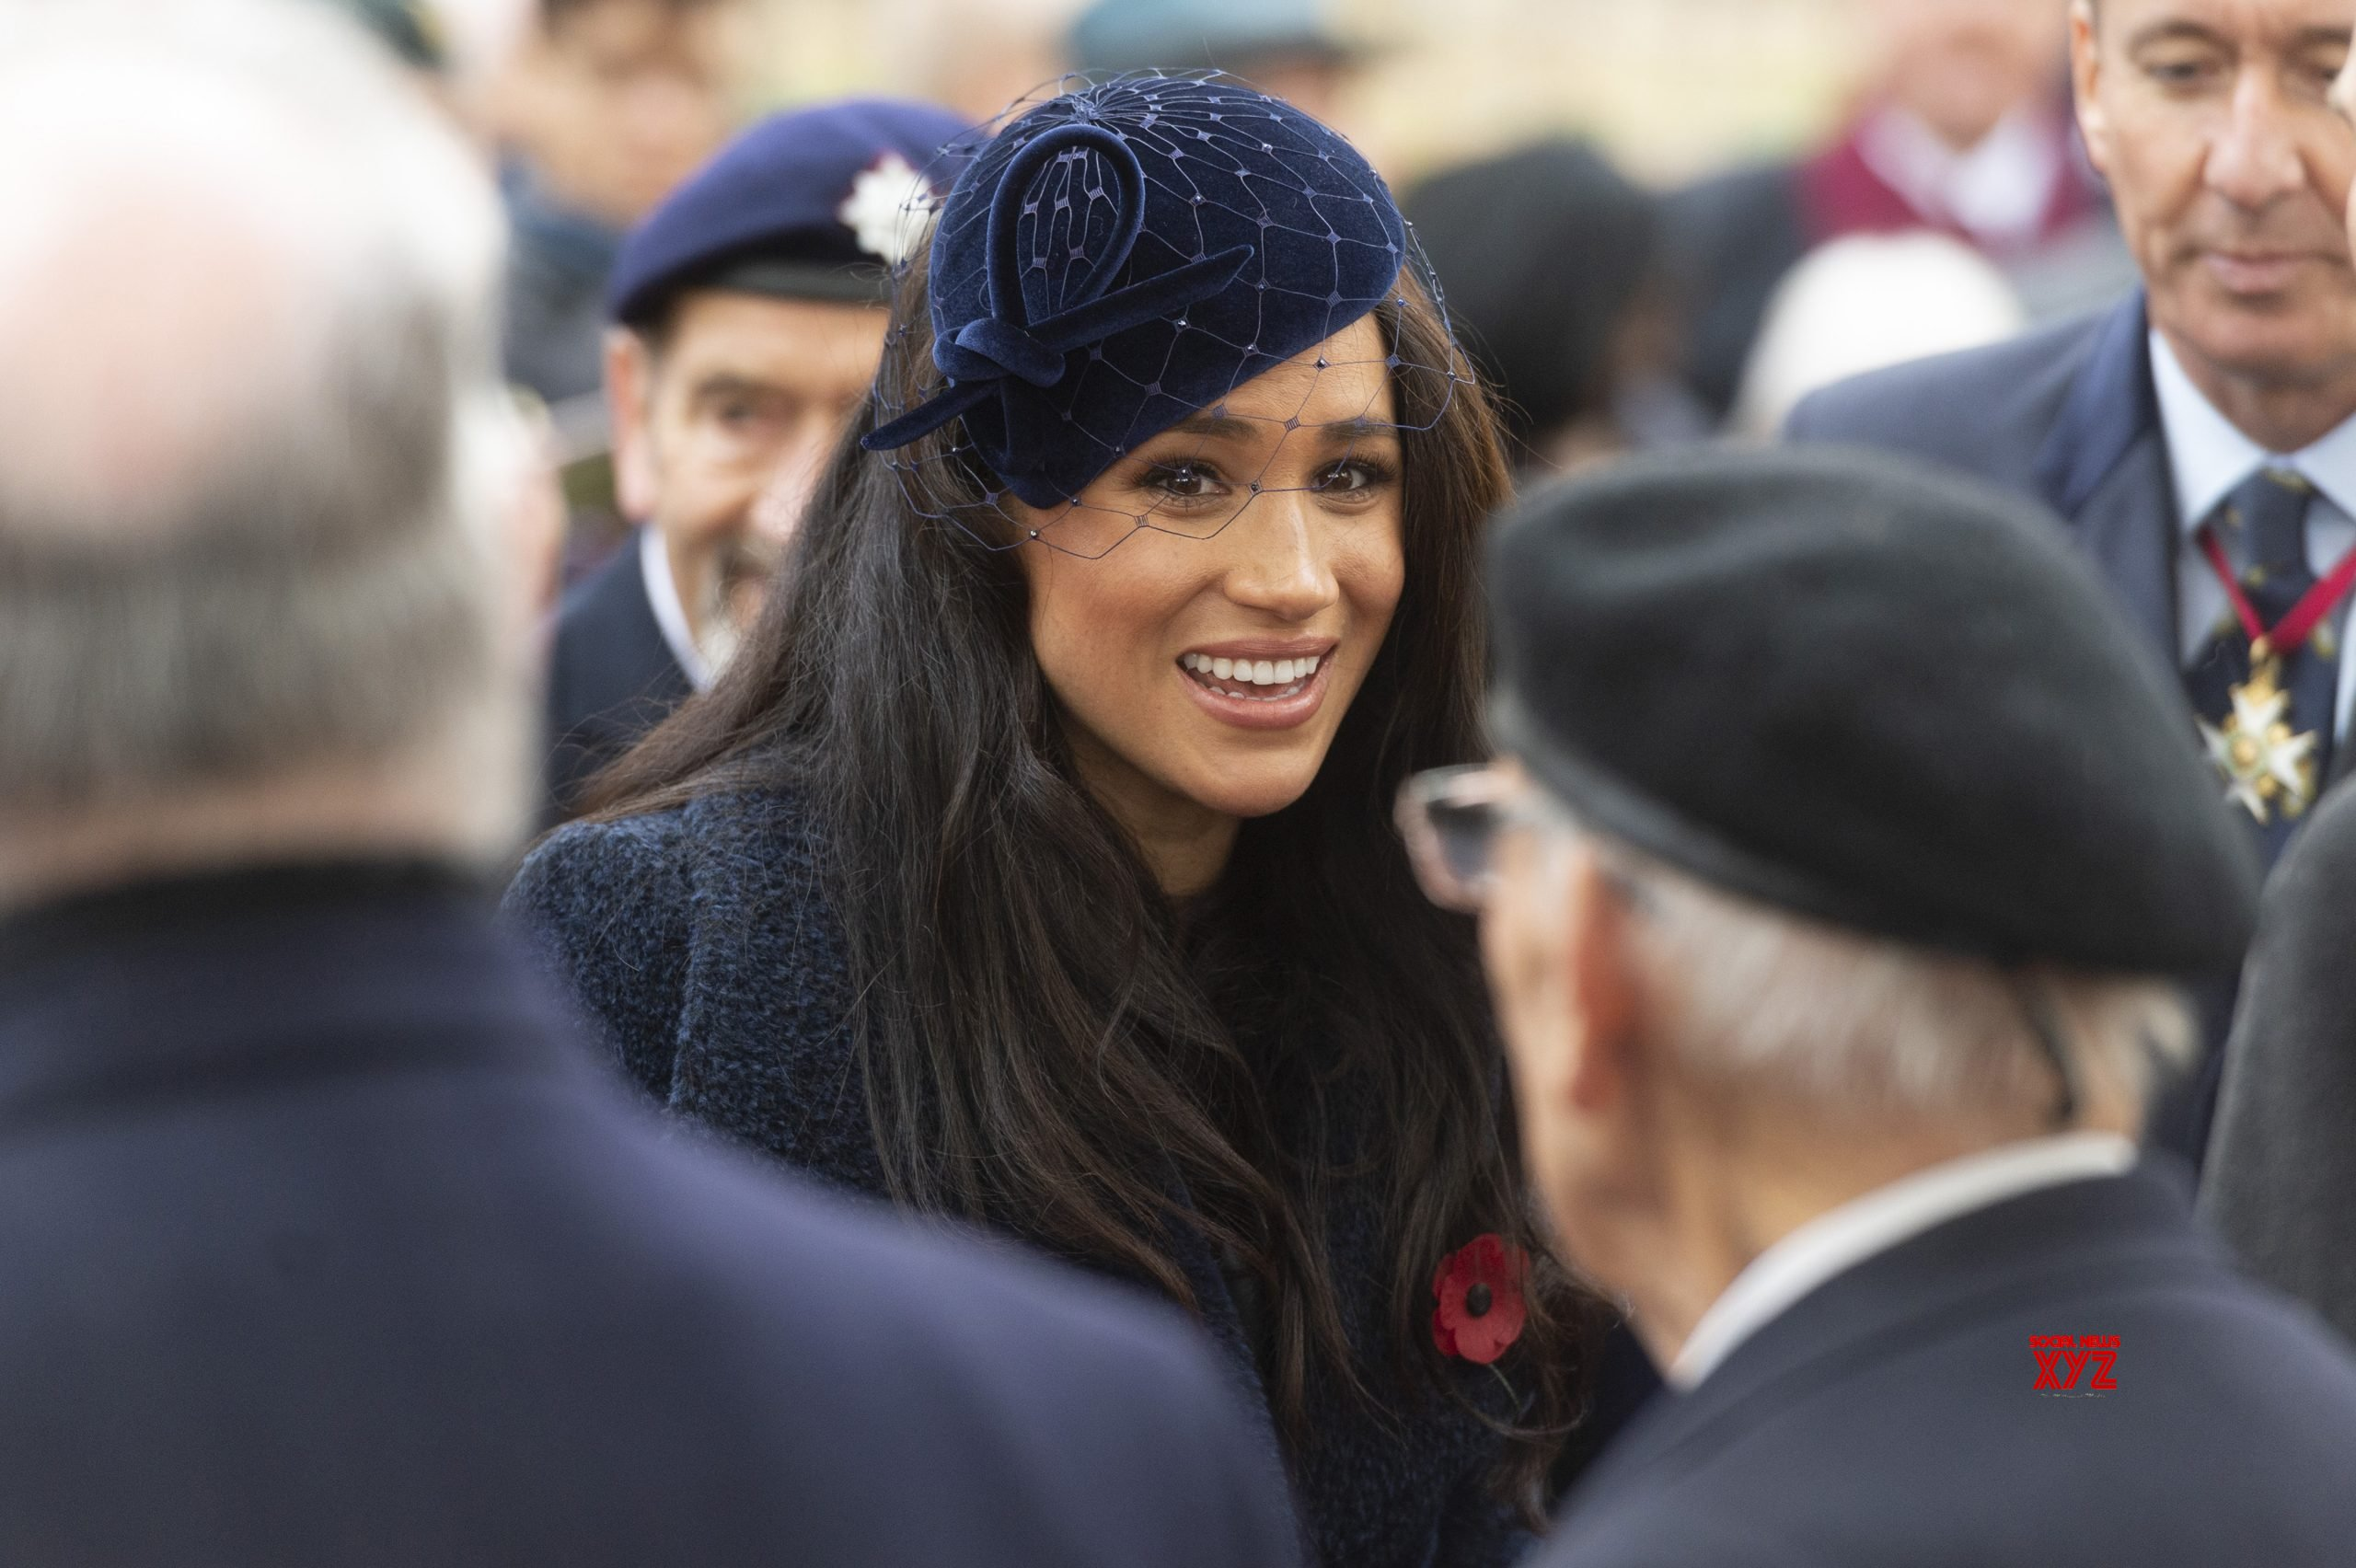 Duchess of Sussex loses first round in newspaper lawsuit